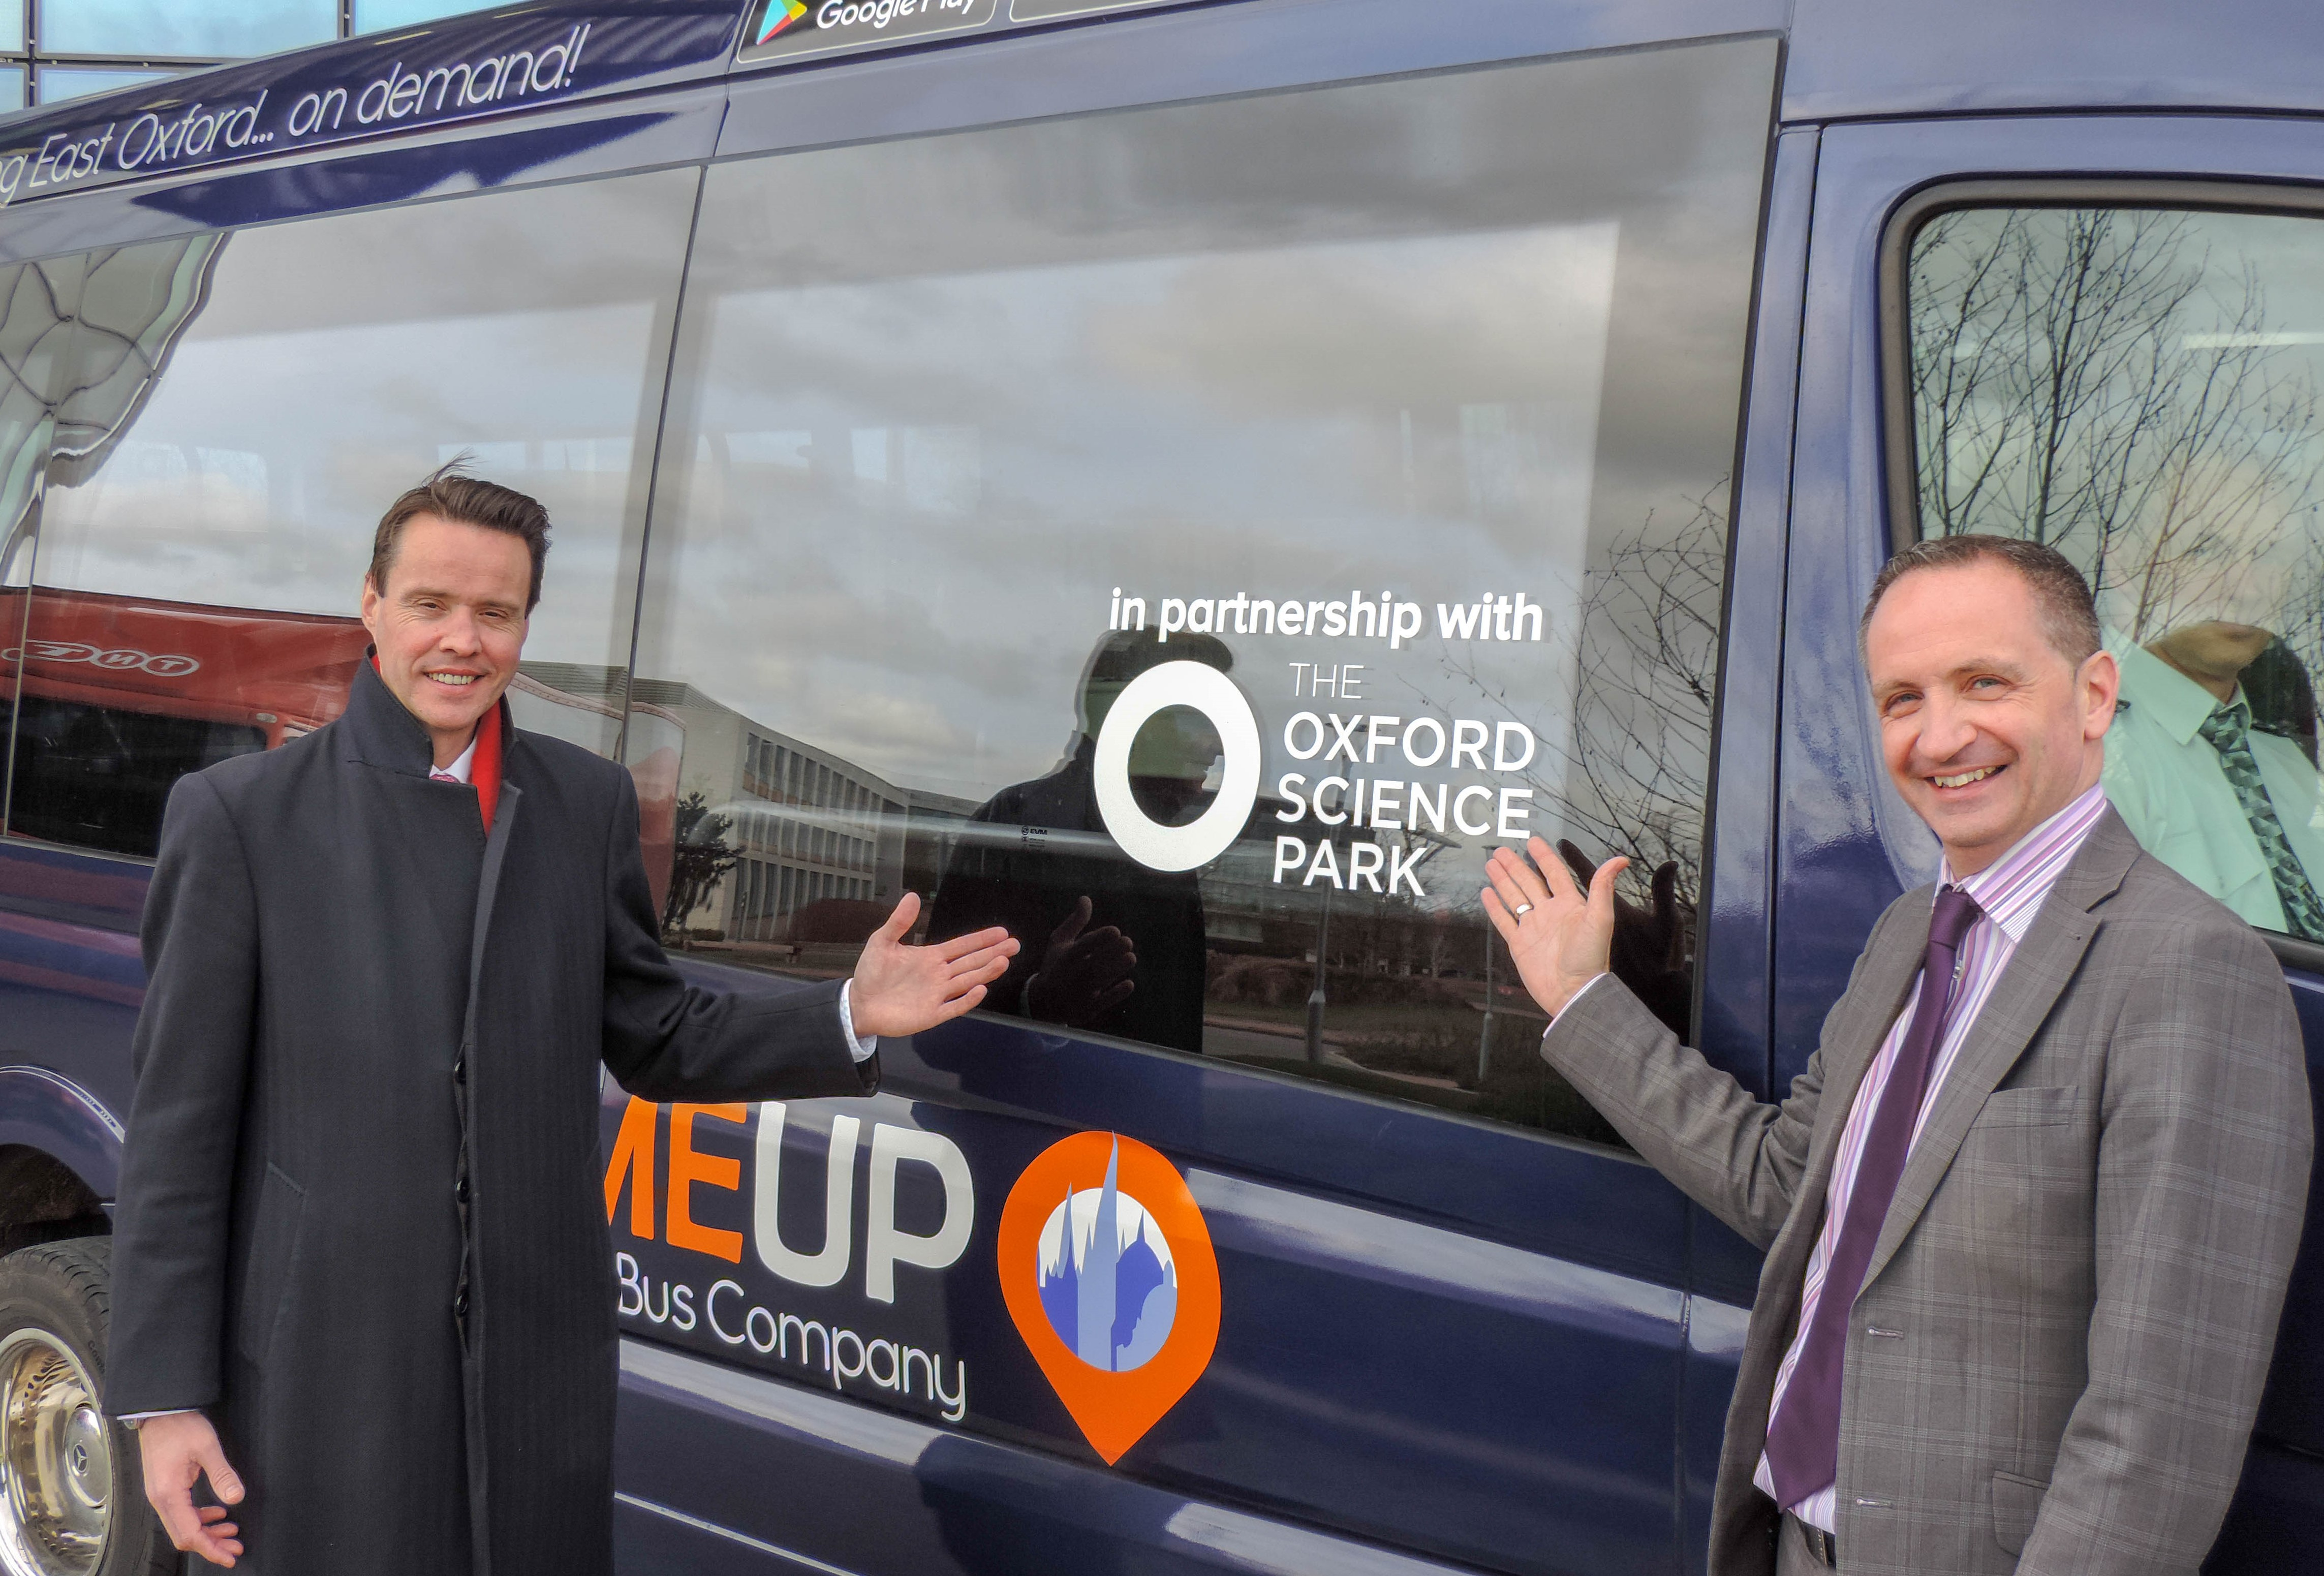 Oxford Bus Company and the Oxford Science Park form partnership as part of joint drive to improve connectivity